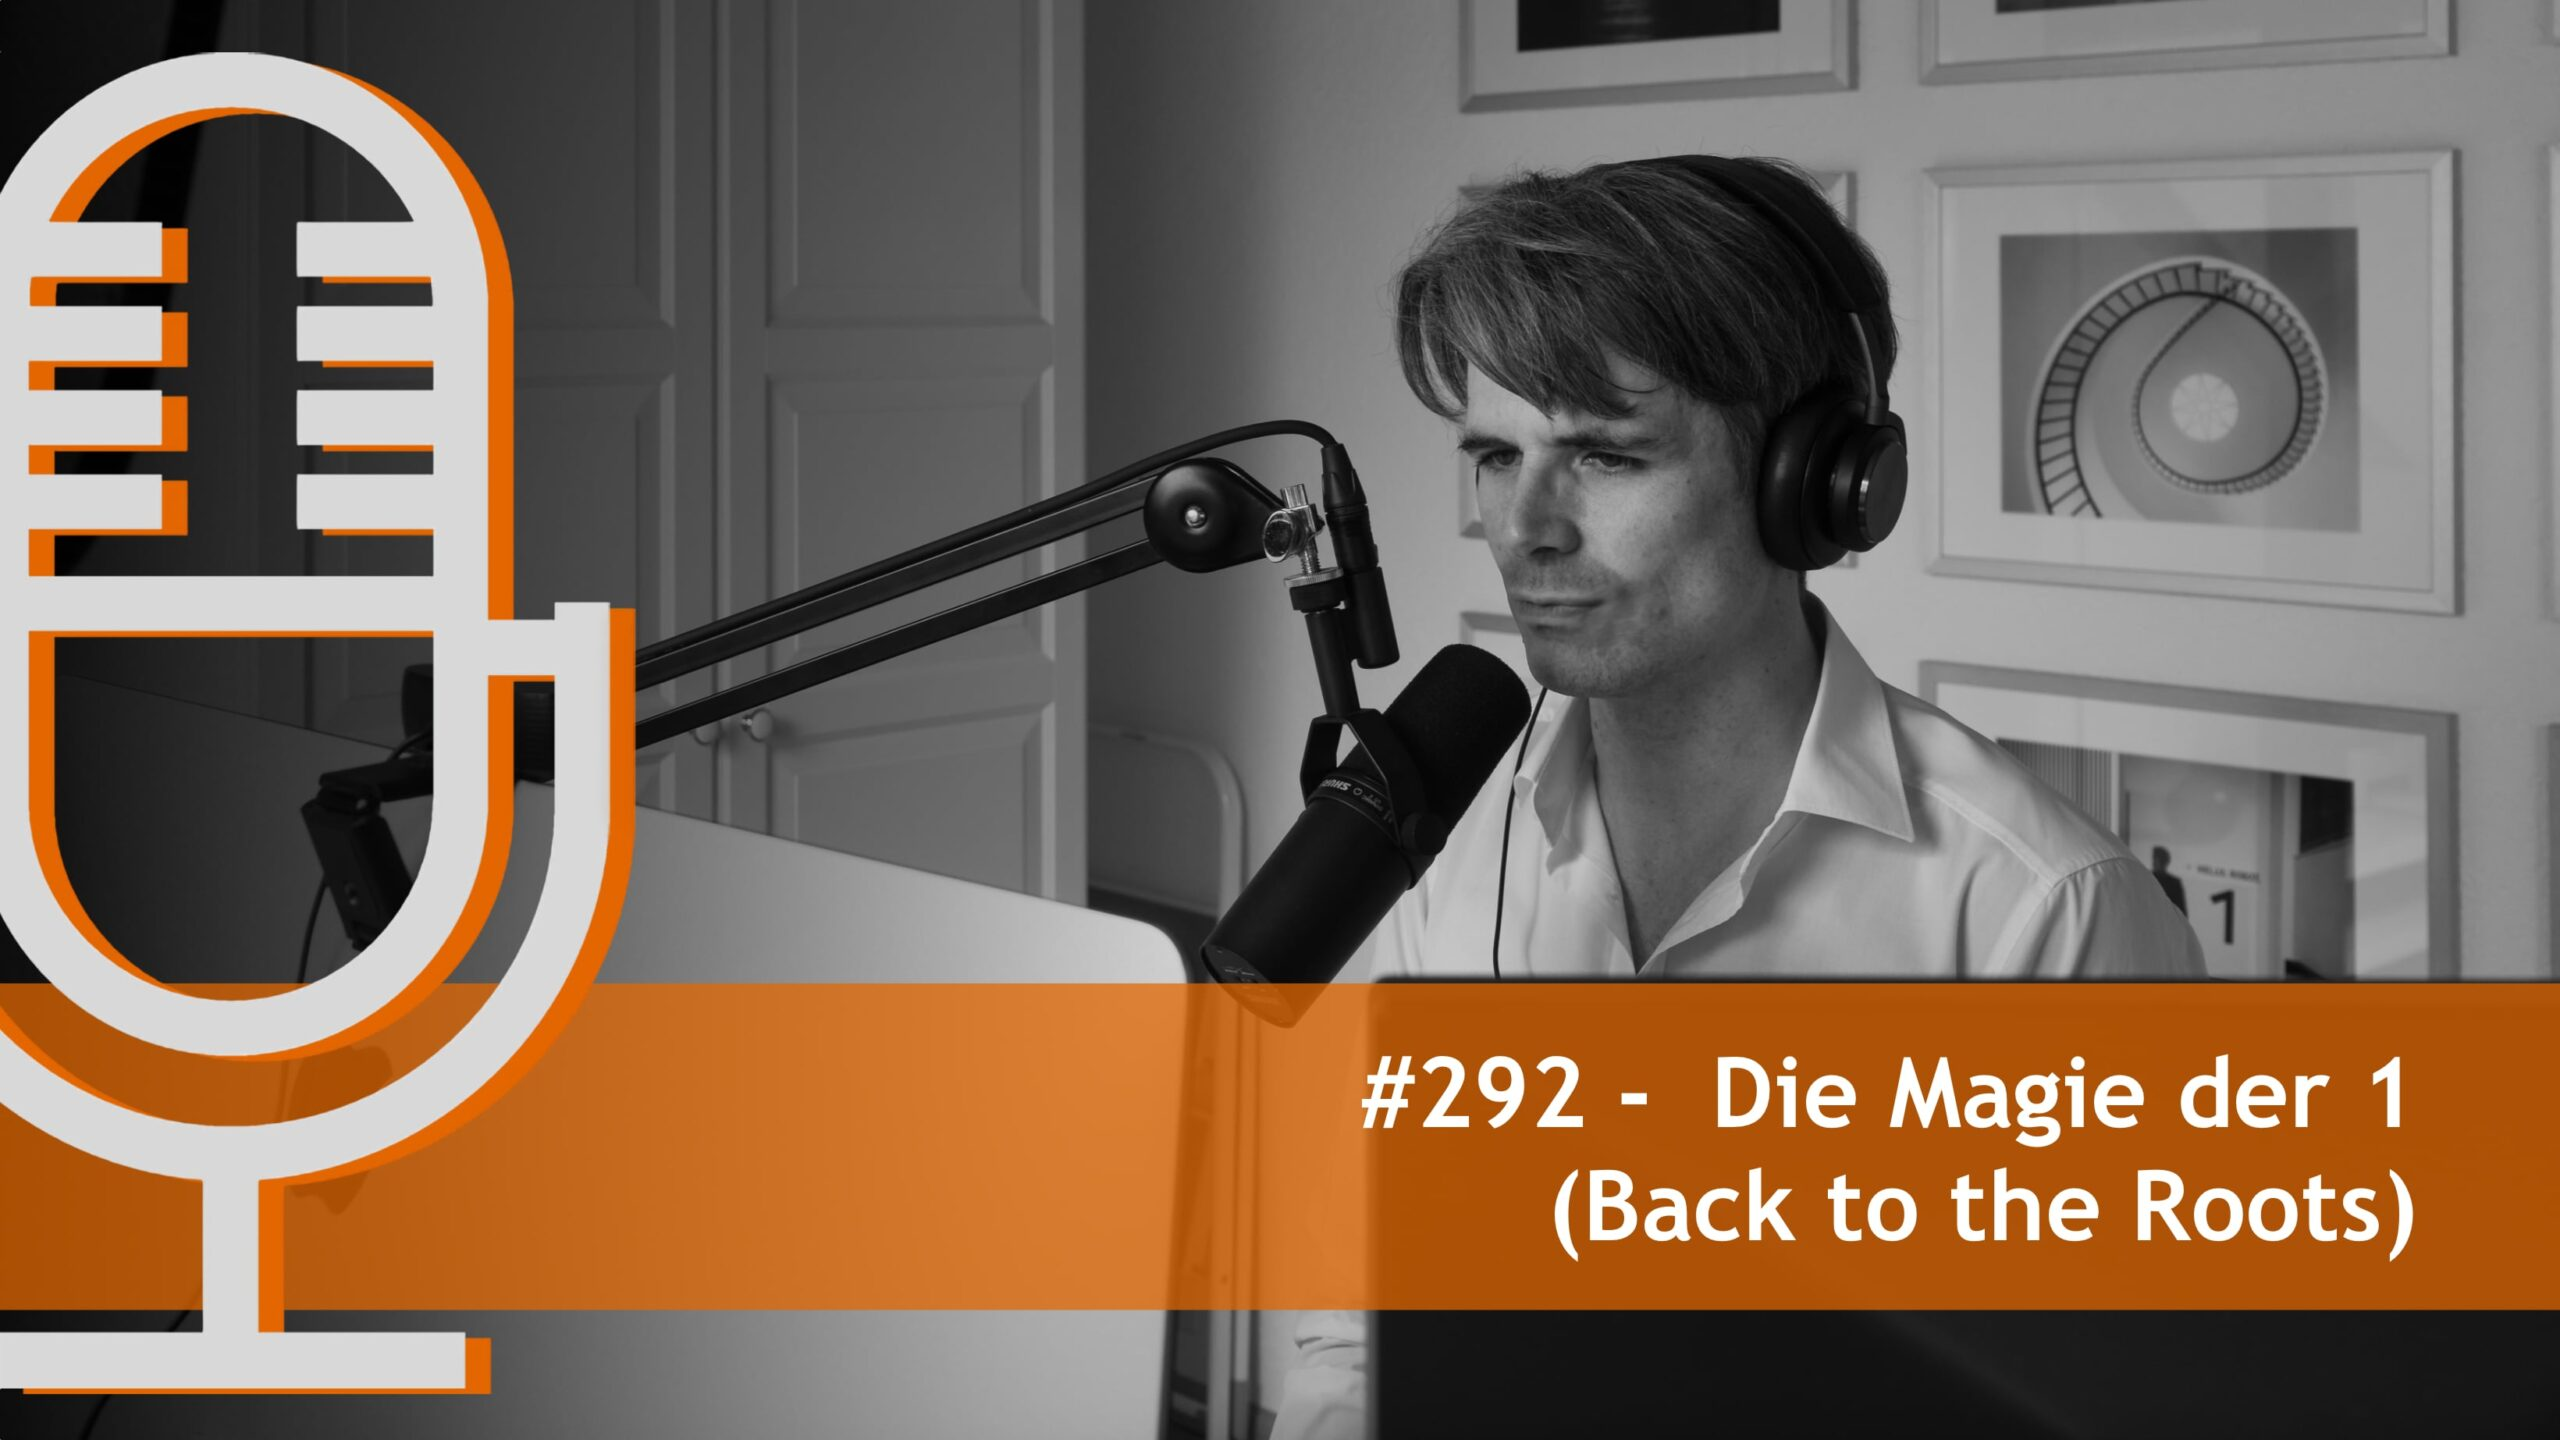 Die Magie der 1 (Back to the Roots)